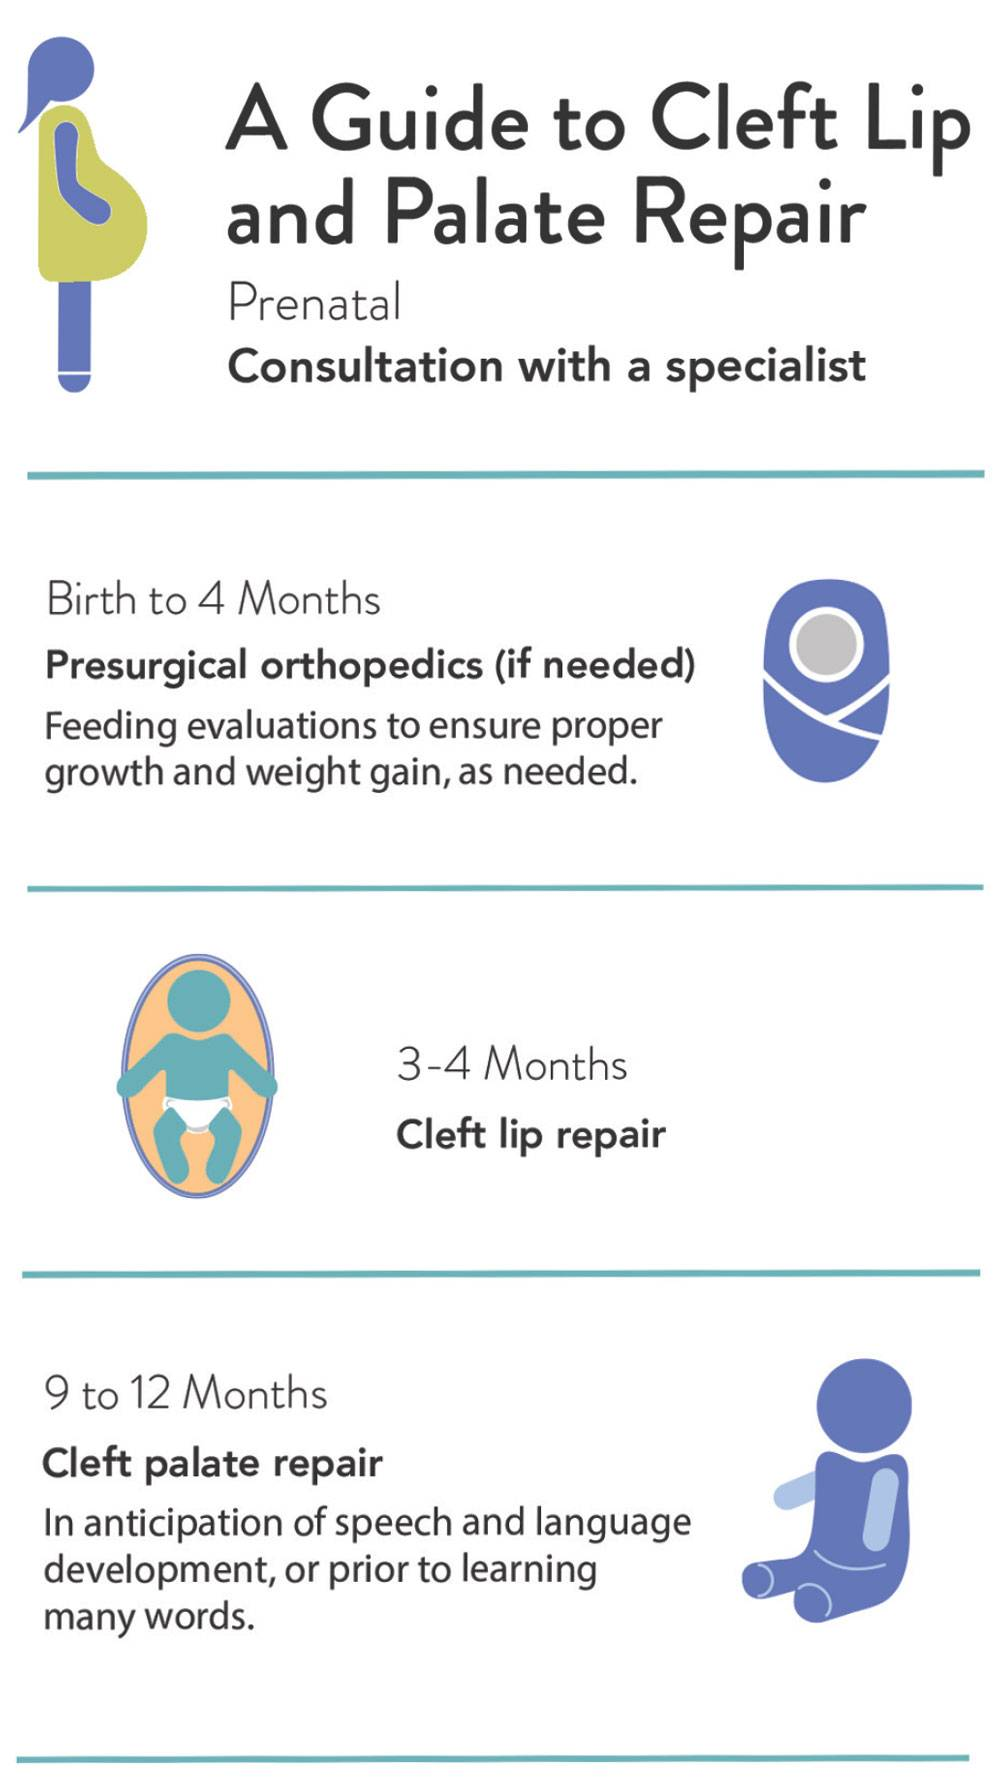 A guide to cleft lip and palate repair